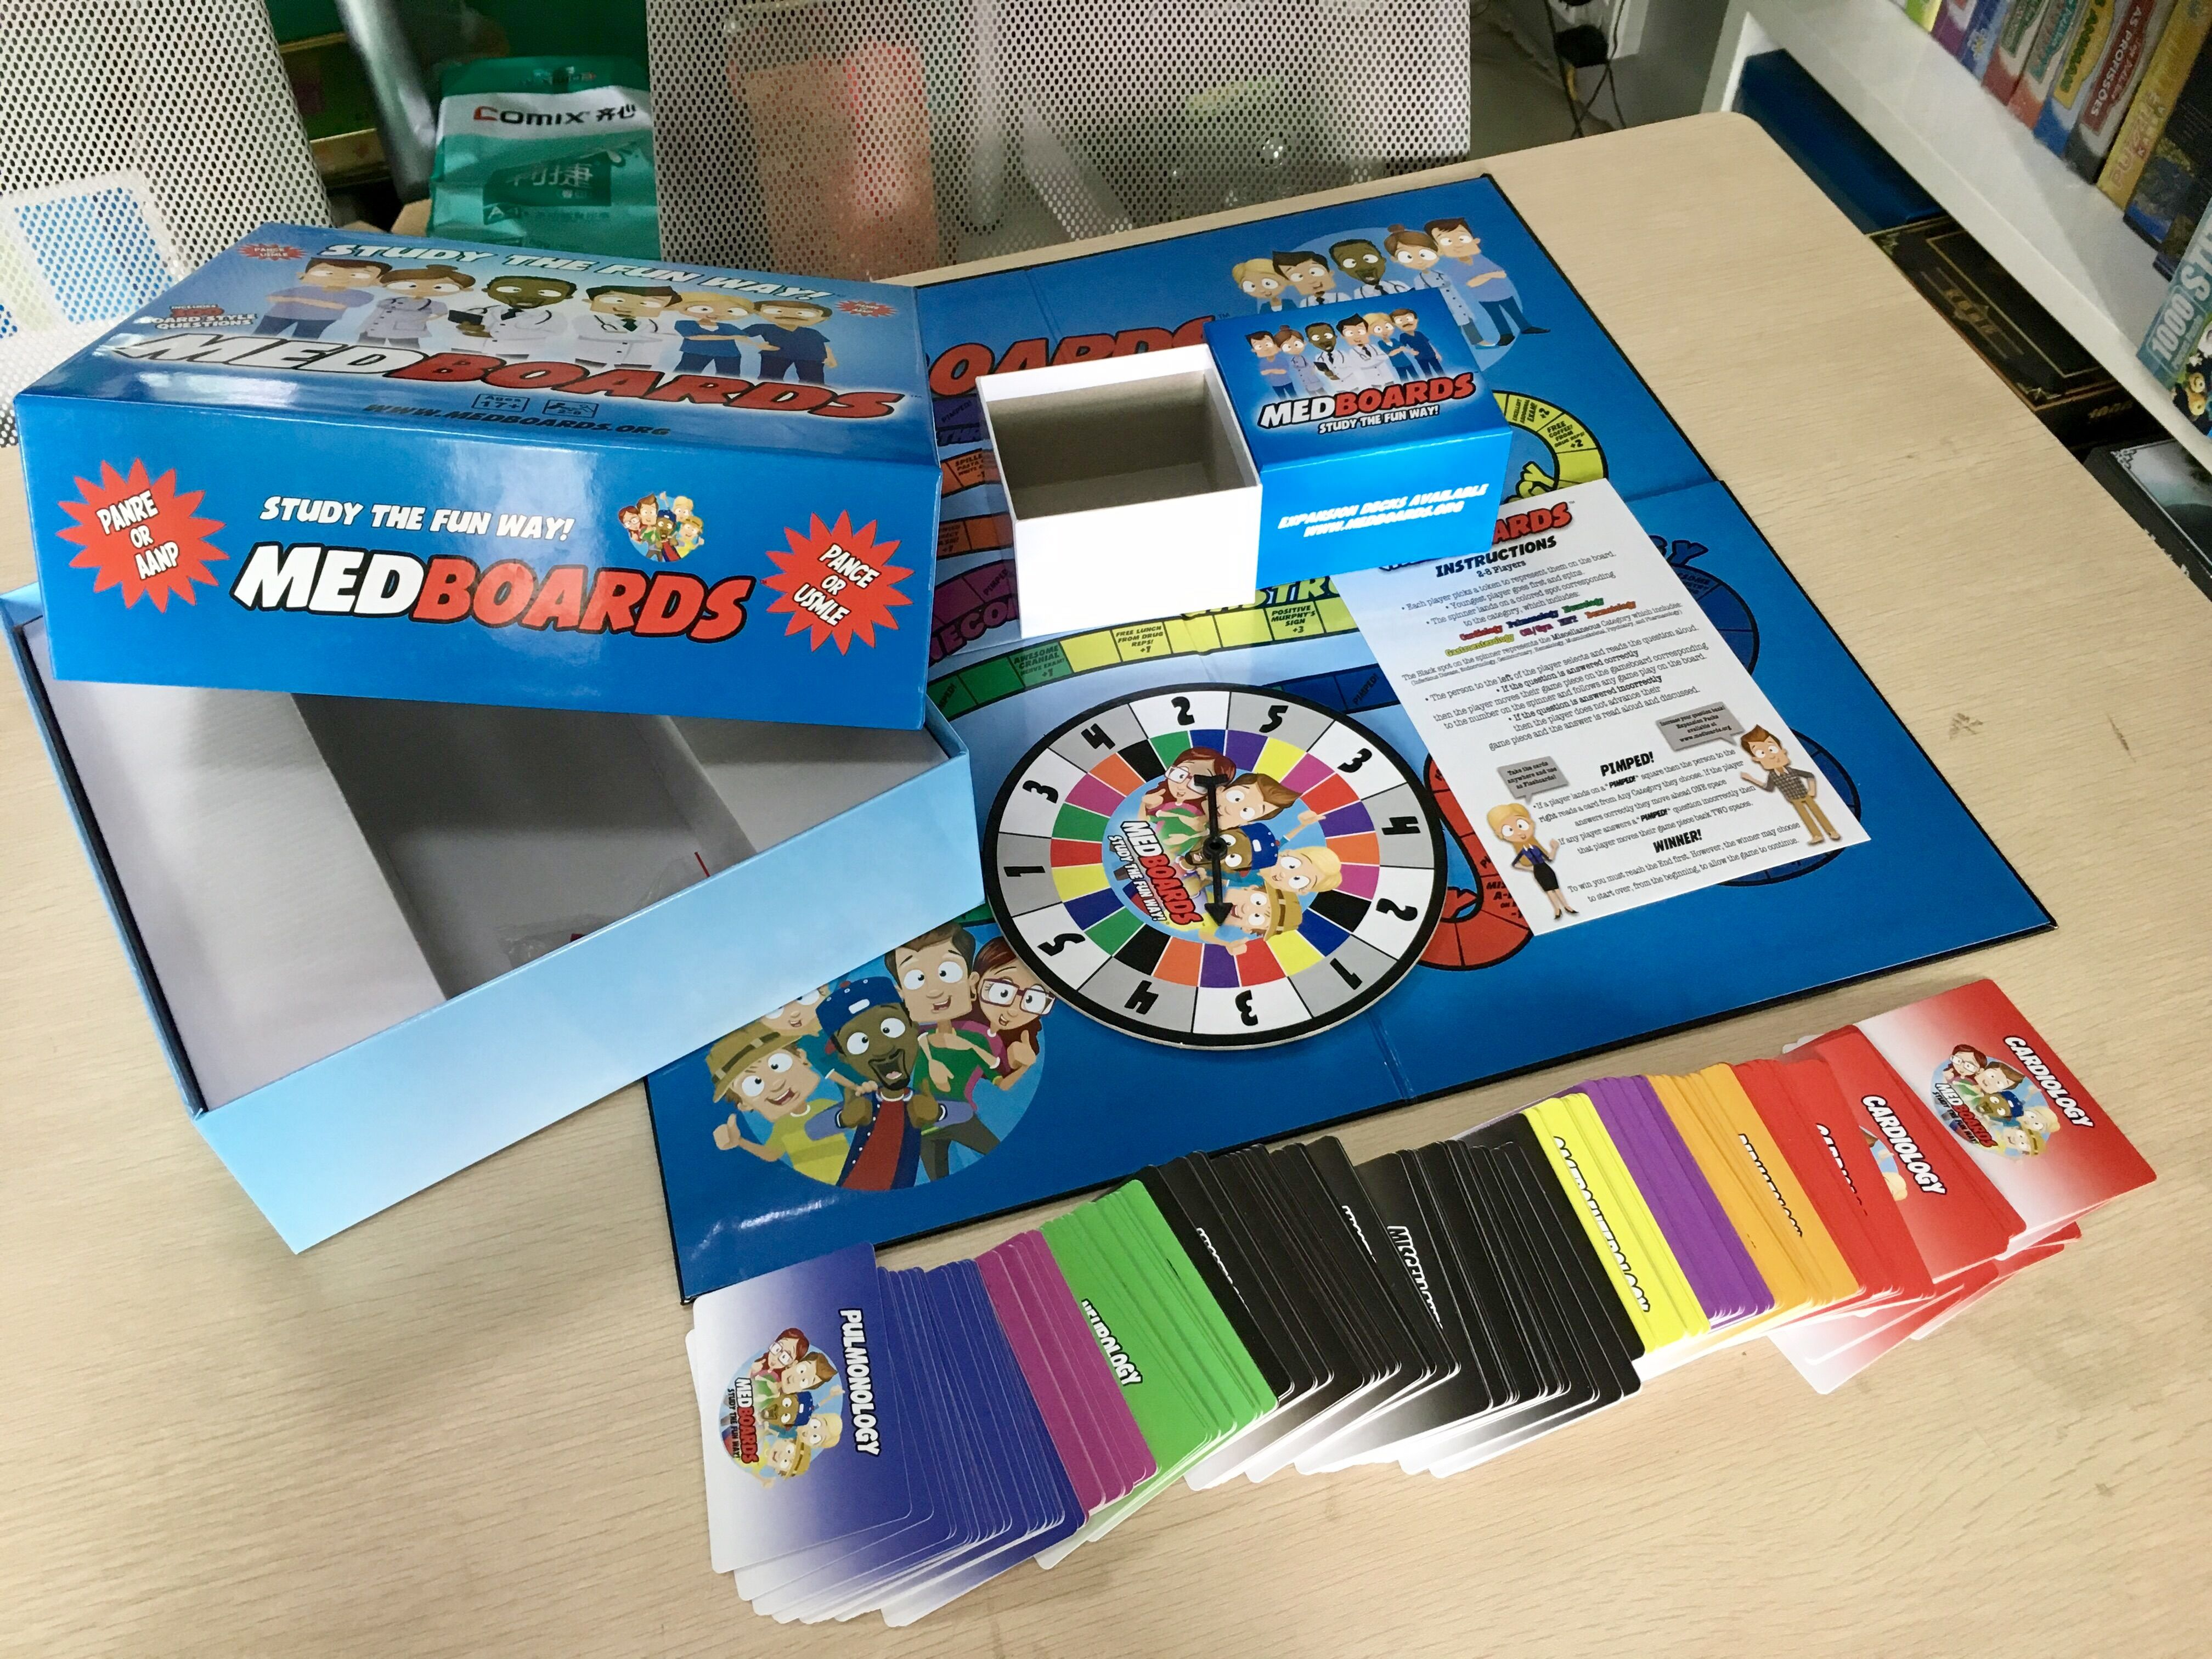 Medboards is a Board Game specifically for the USMLE or